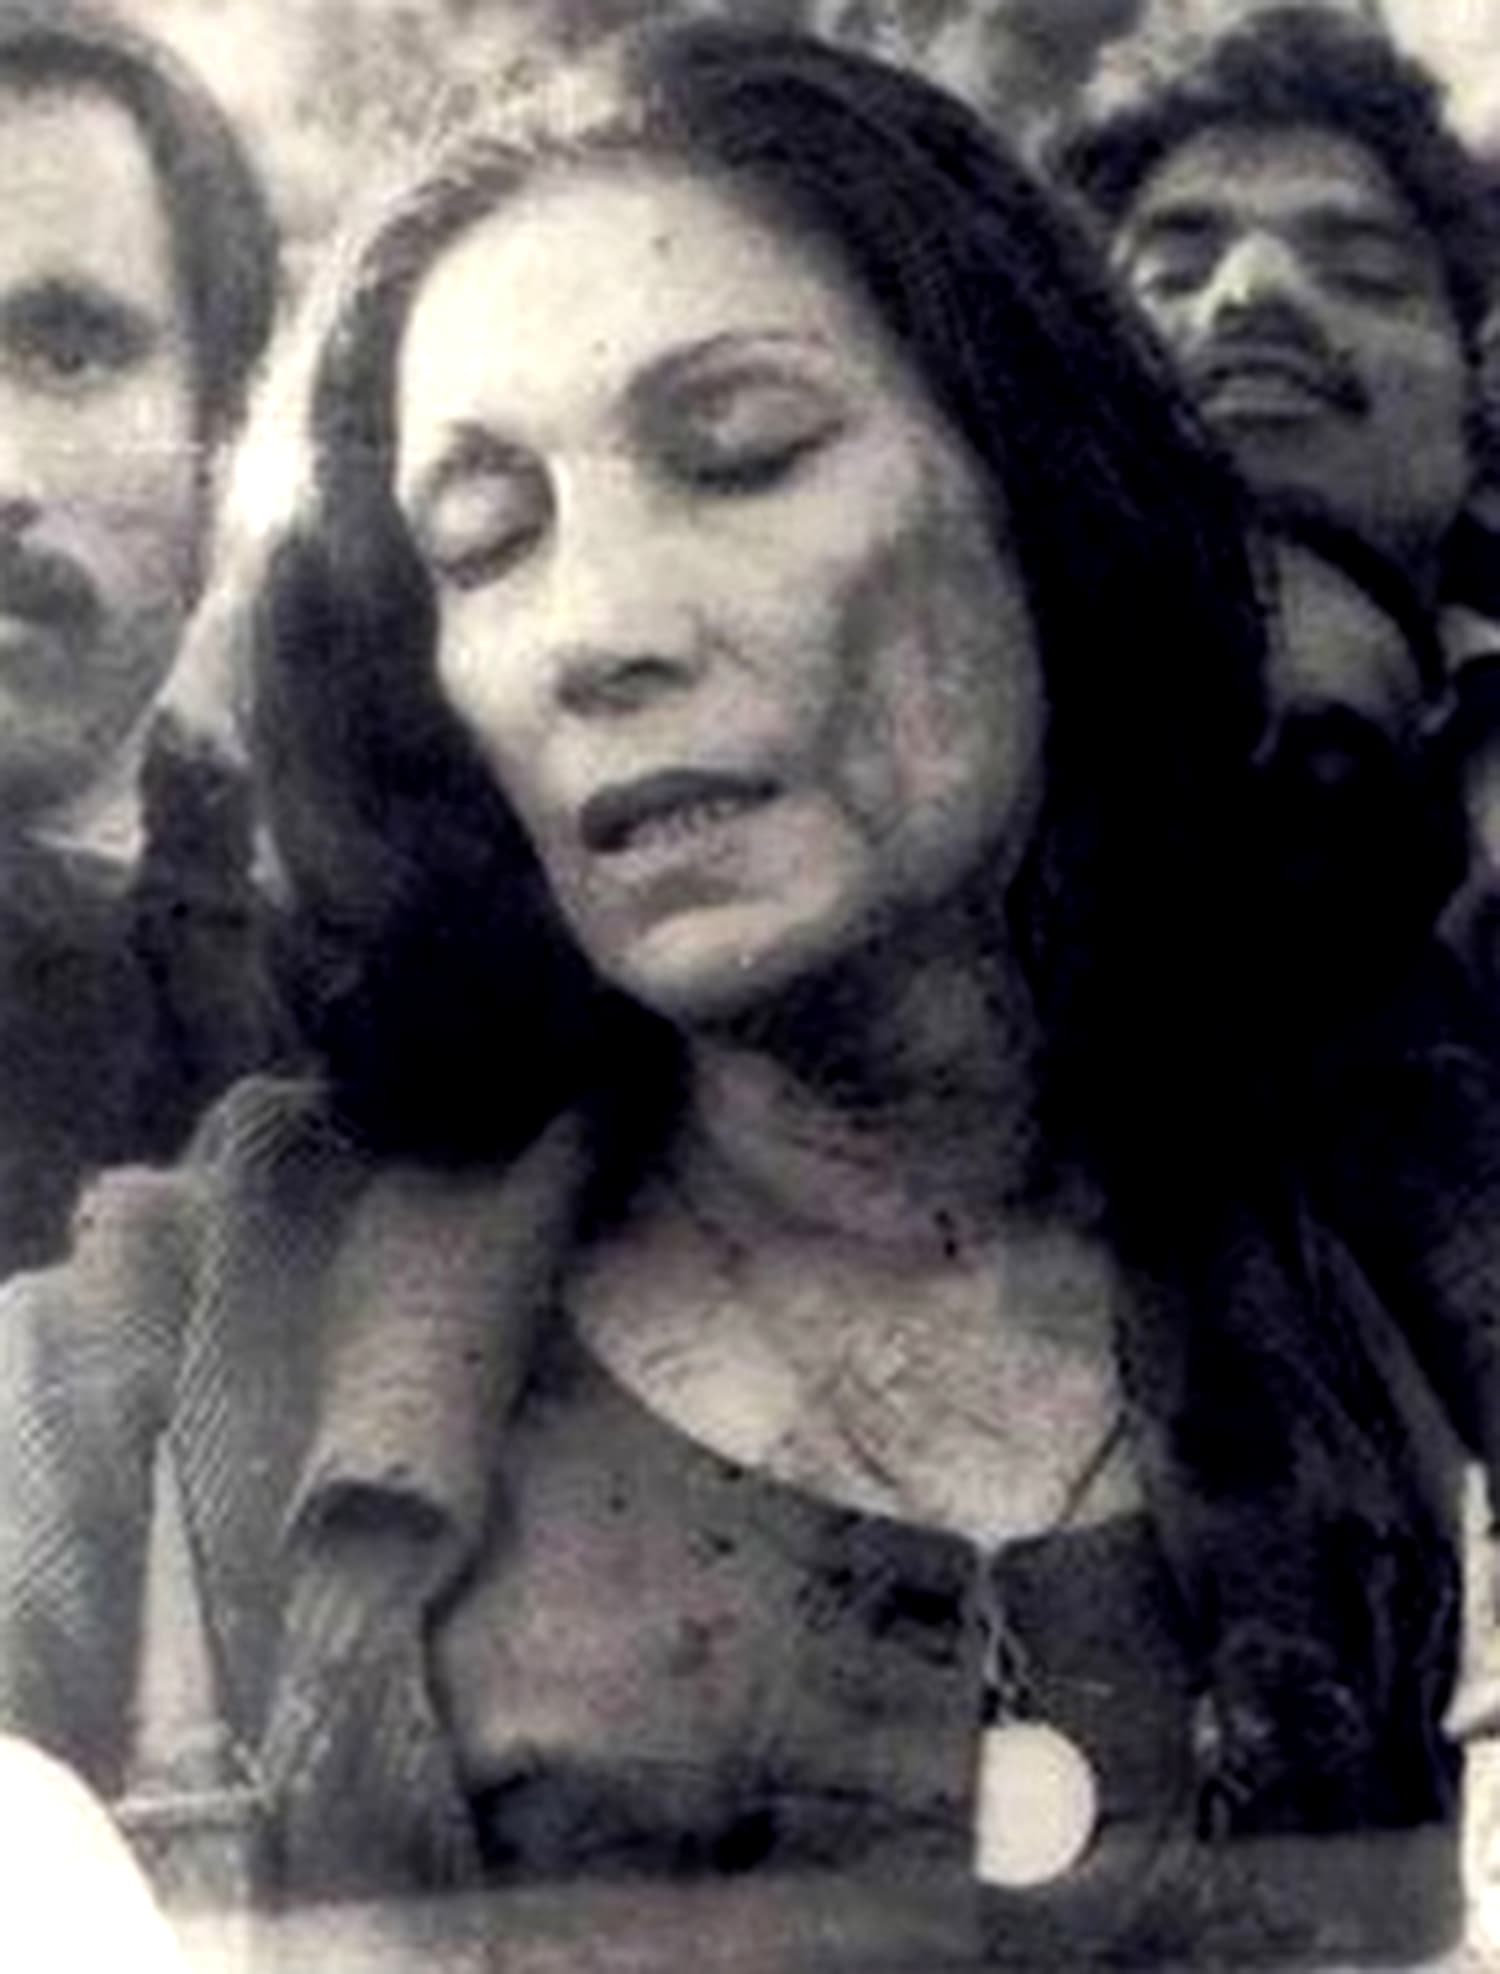 1977: Wife of former PM ZA Bhutto, Nusrat Bhutto, bleeds after being caught up in a riot between police and pro-Bhutto spectators at the Gaddafi Stadium during a Test match against England. (Pic: Zaid/DAWN)